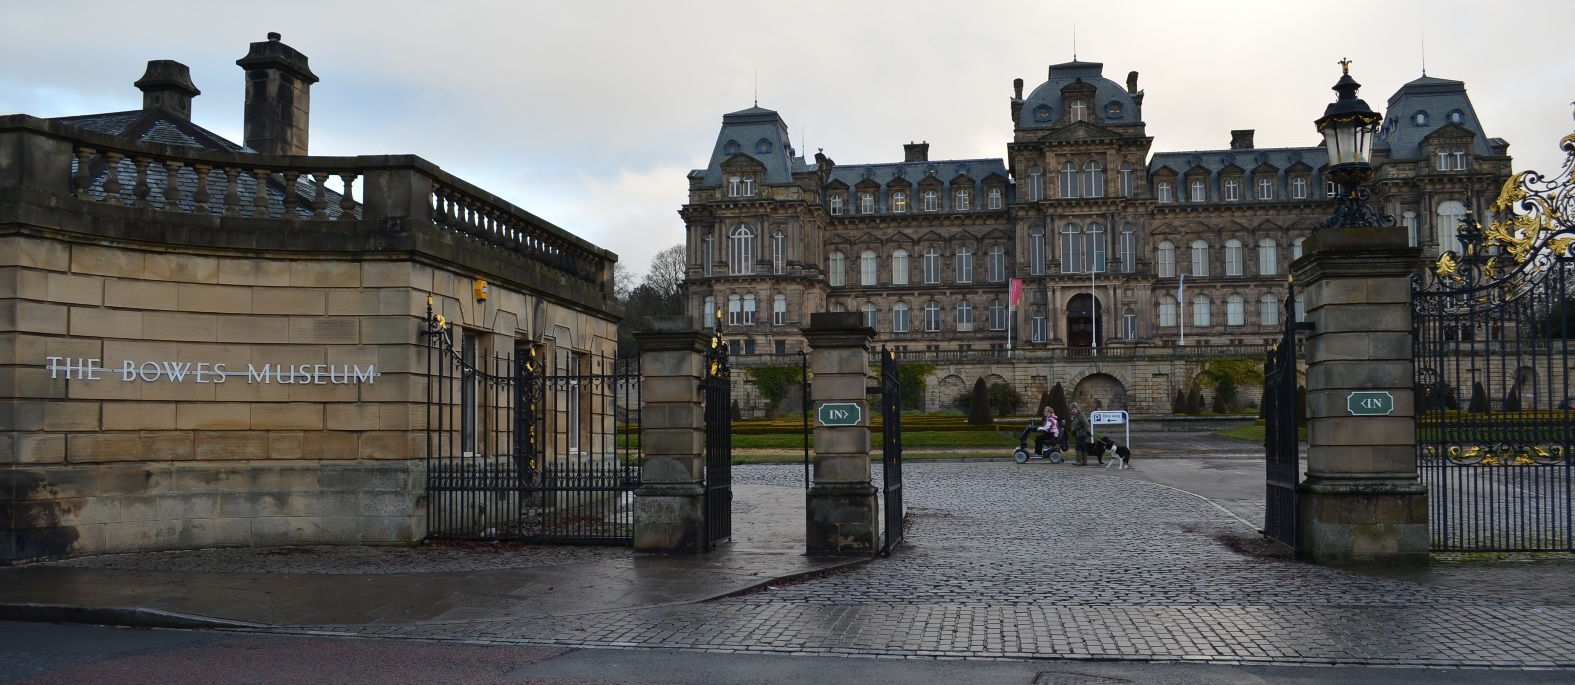 LOCK OUT: Police are urging officials at the Bowes Museum to close the gates to the public grounds at night to deter anti-social behaviour.